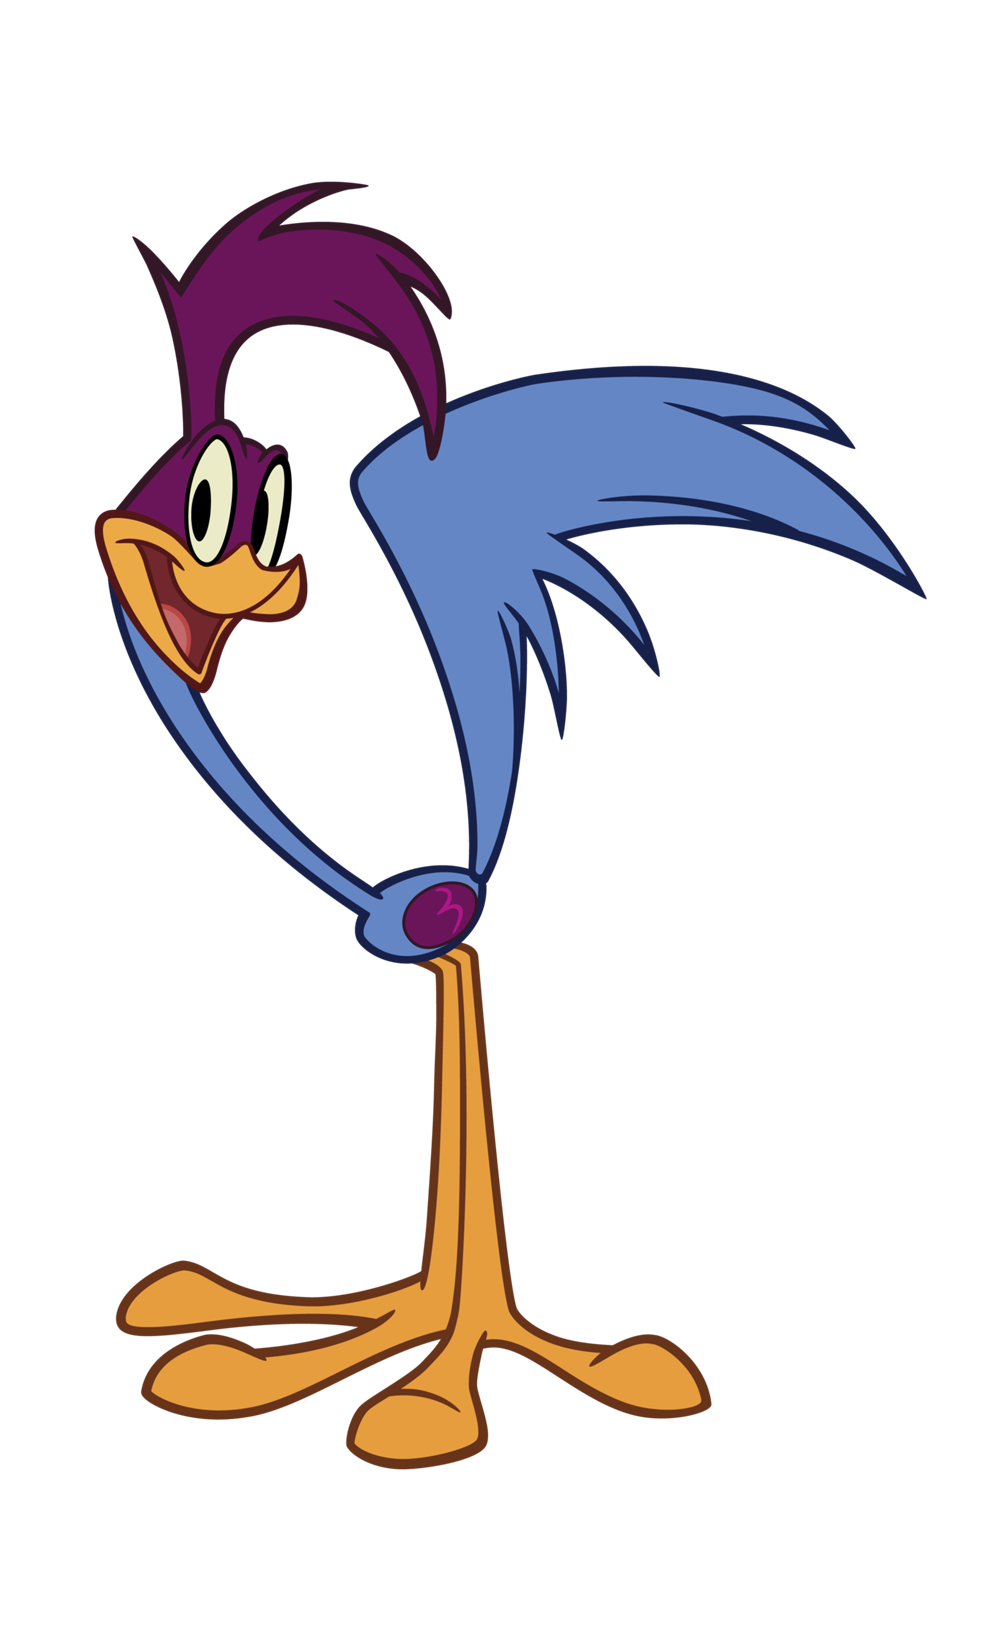 Road Runner - ClipArt Best - ClipArt Best